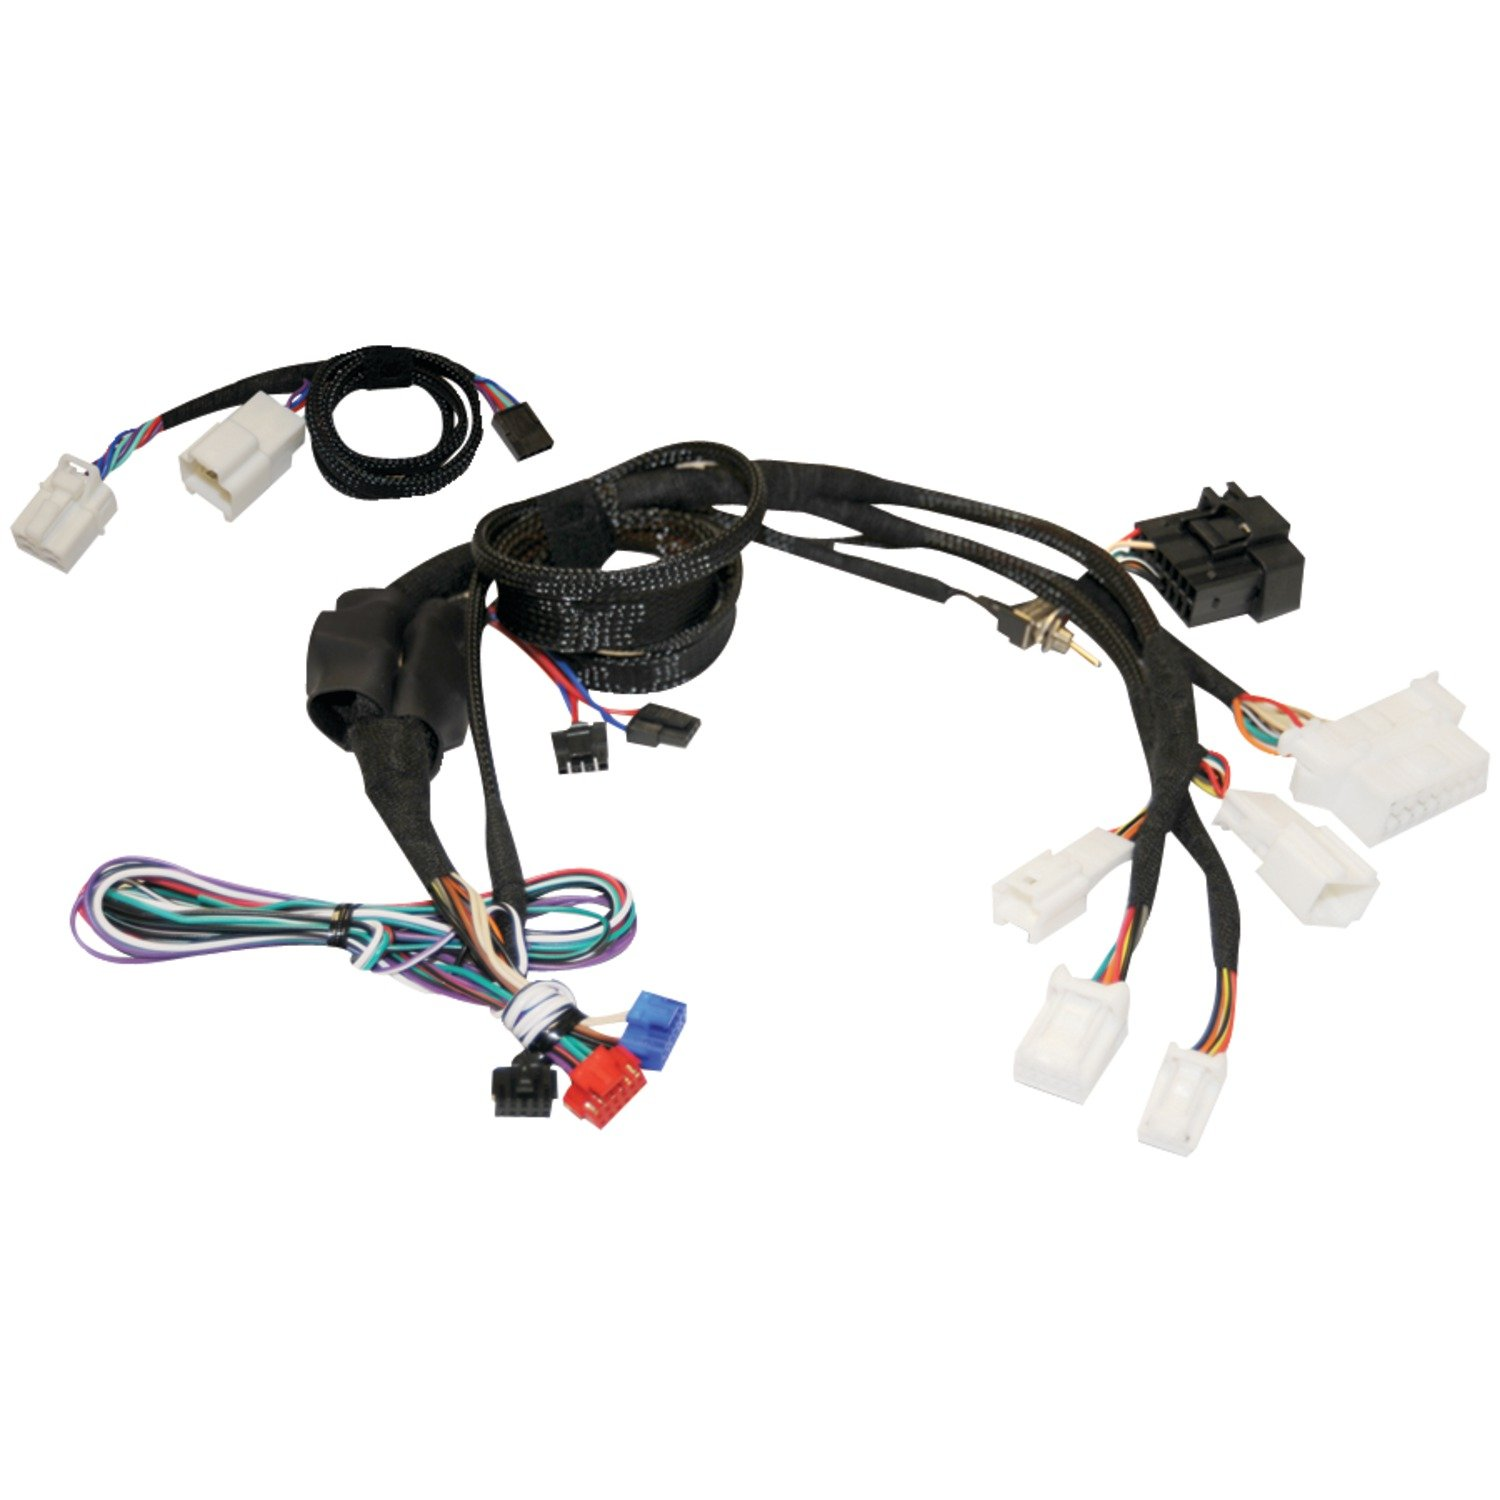 amazon com directed electronics thniss3 nissan infiniti plug and malibu python security wiring diagram amazon com directed electronics thniss3 nissan infiniti plug and play t harness for dball and dball2 cell phones & accessories